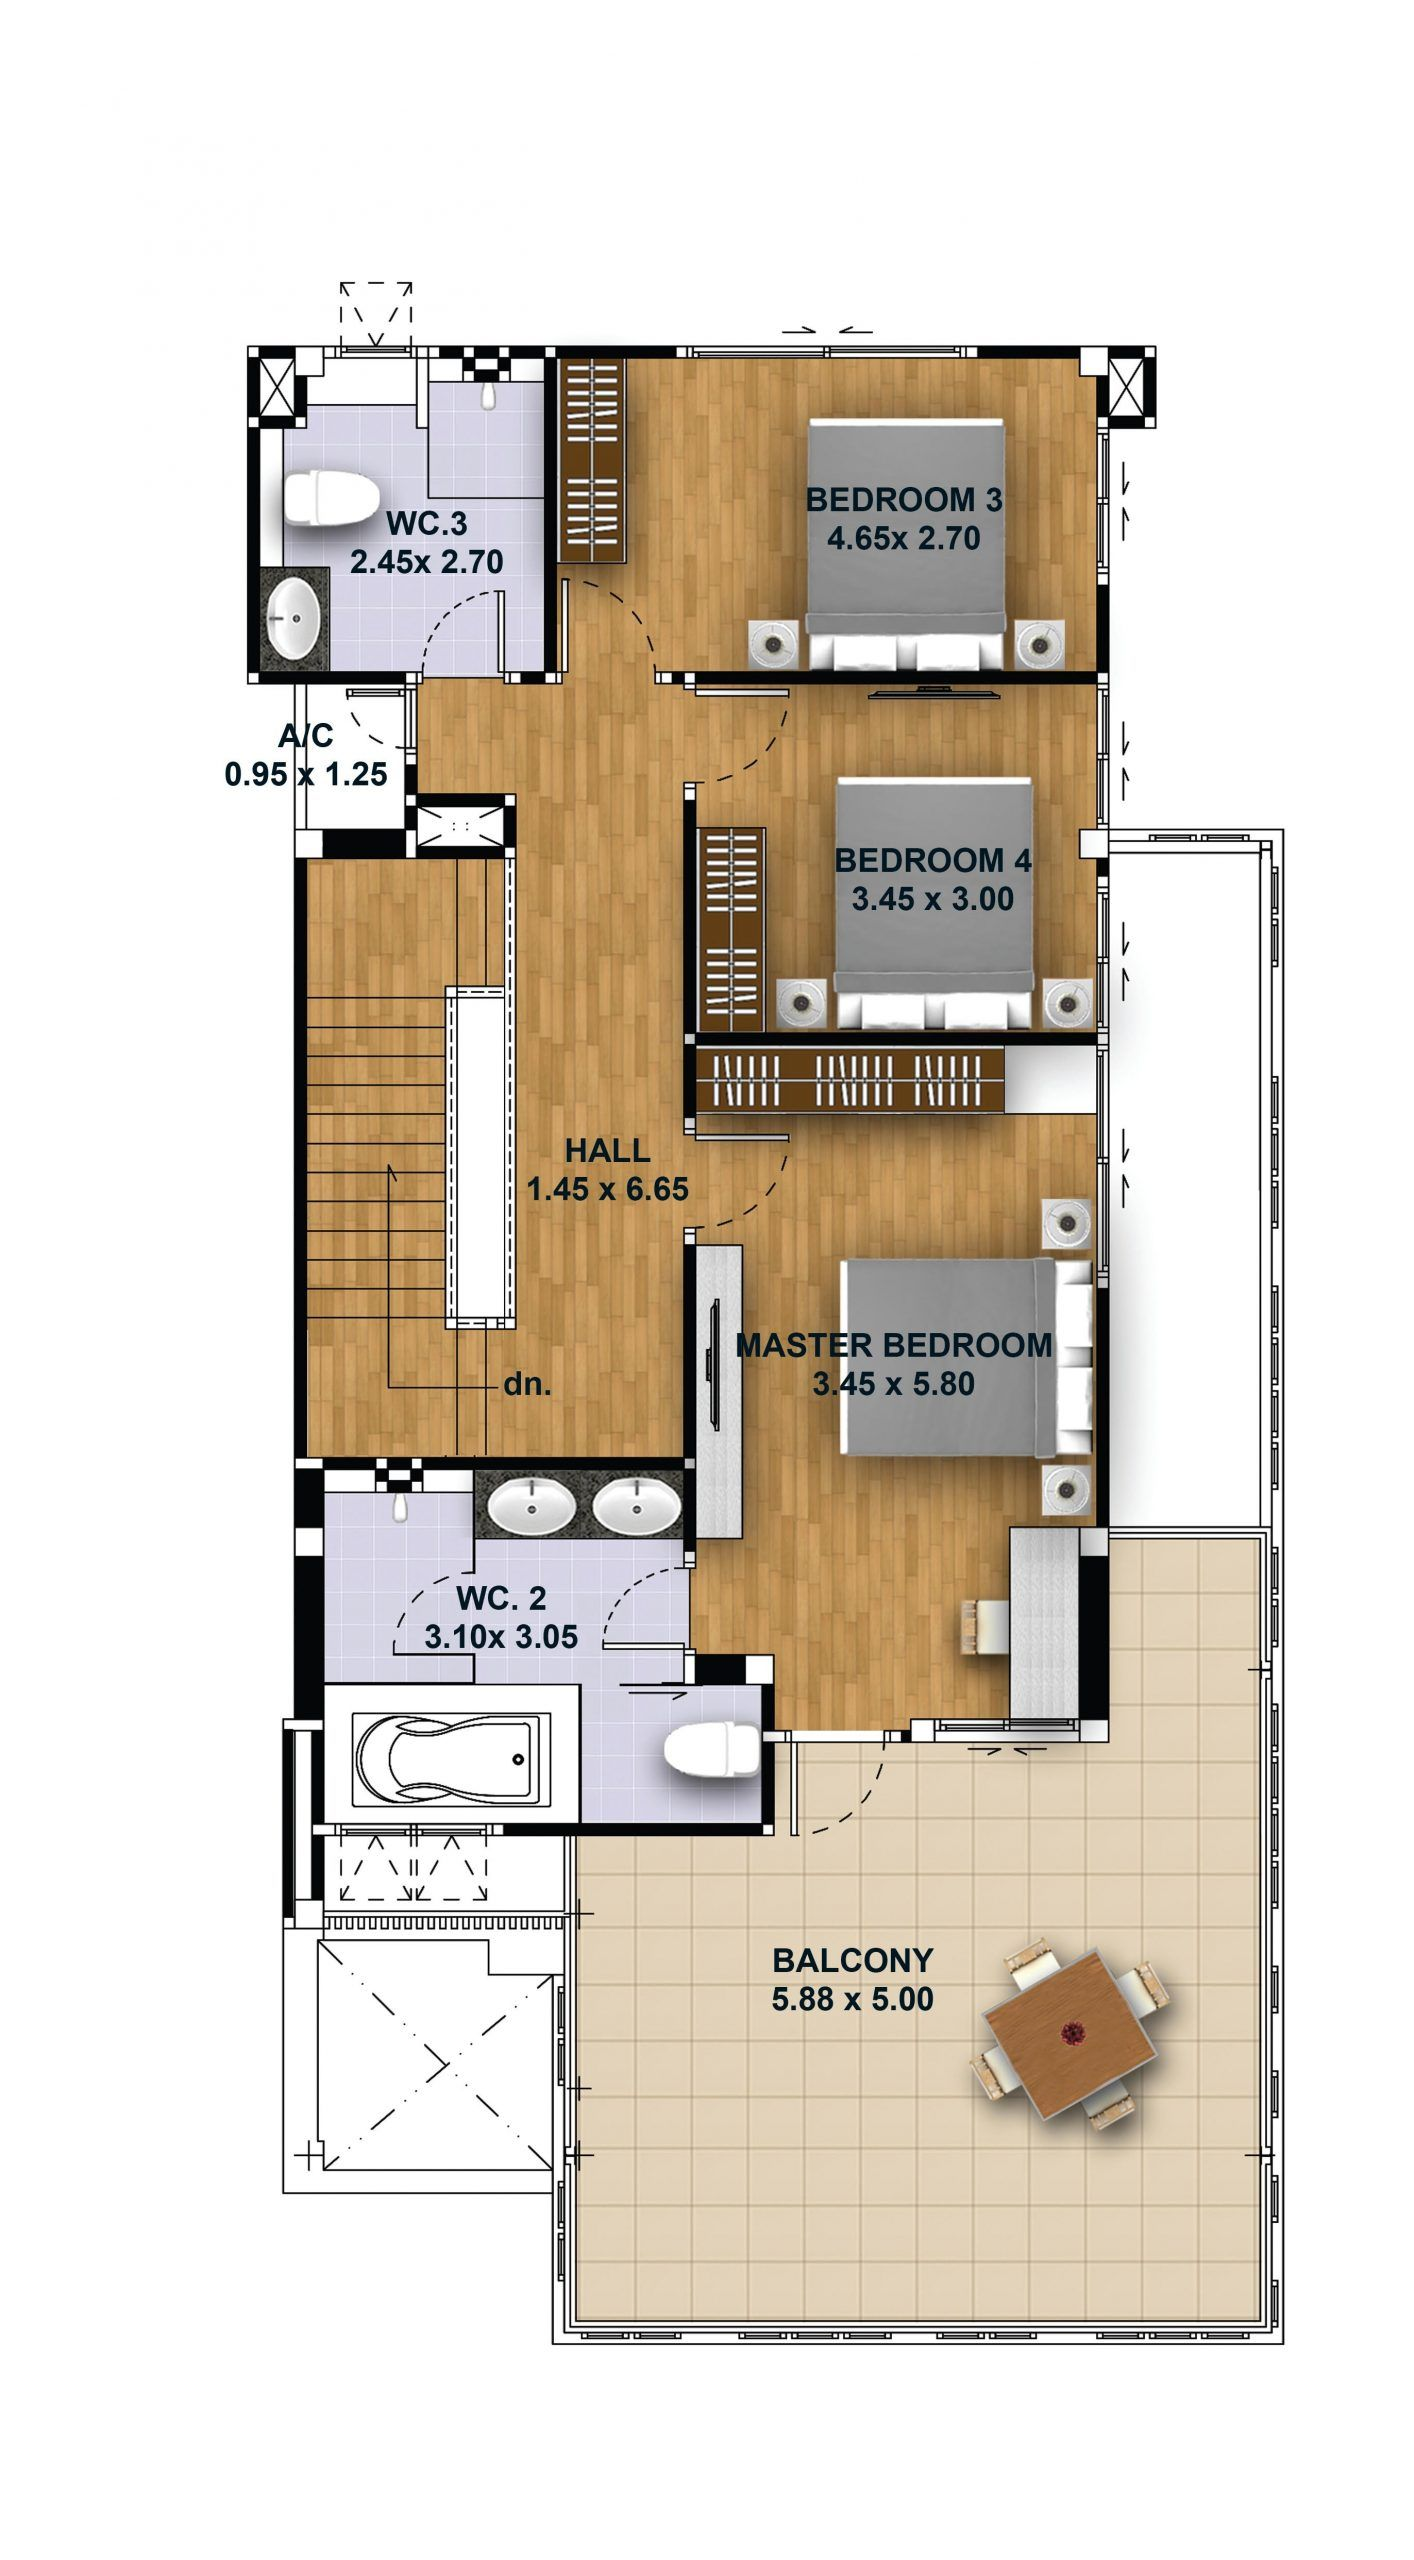 House Design 3d Plot 10x20 With 4 Bedrooms Tiny House Design 3d Model House Plan Tiny House Design House Design